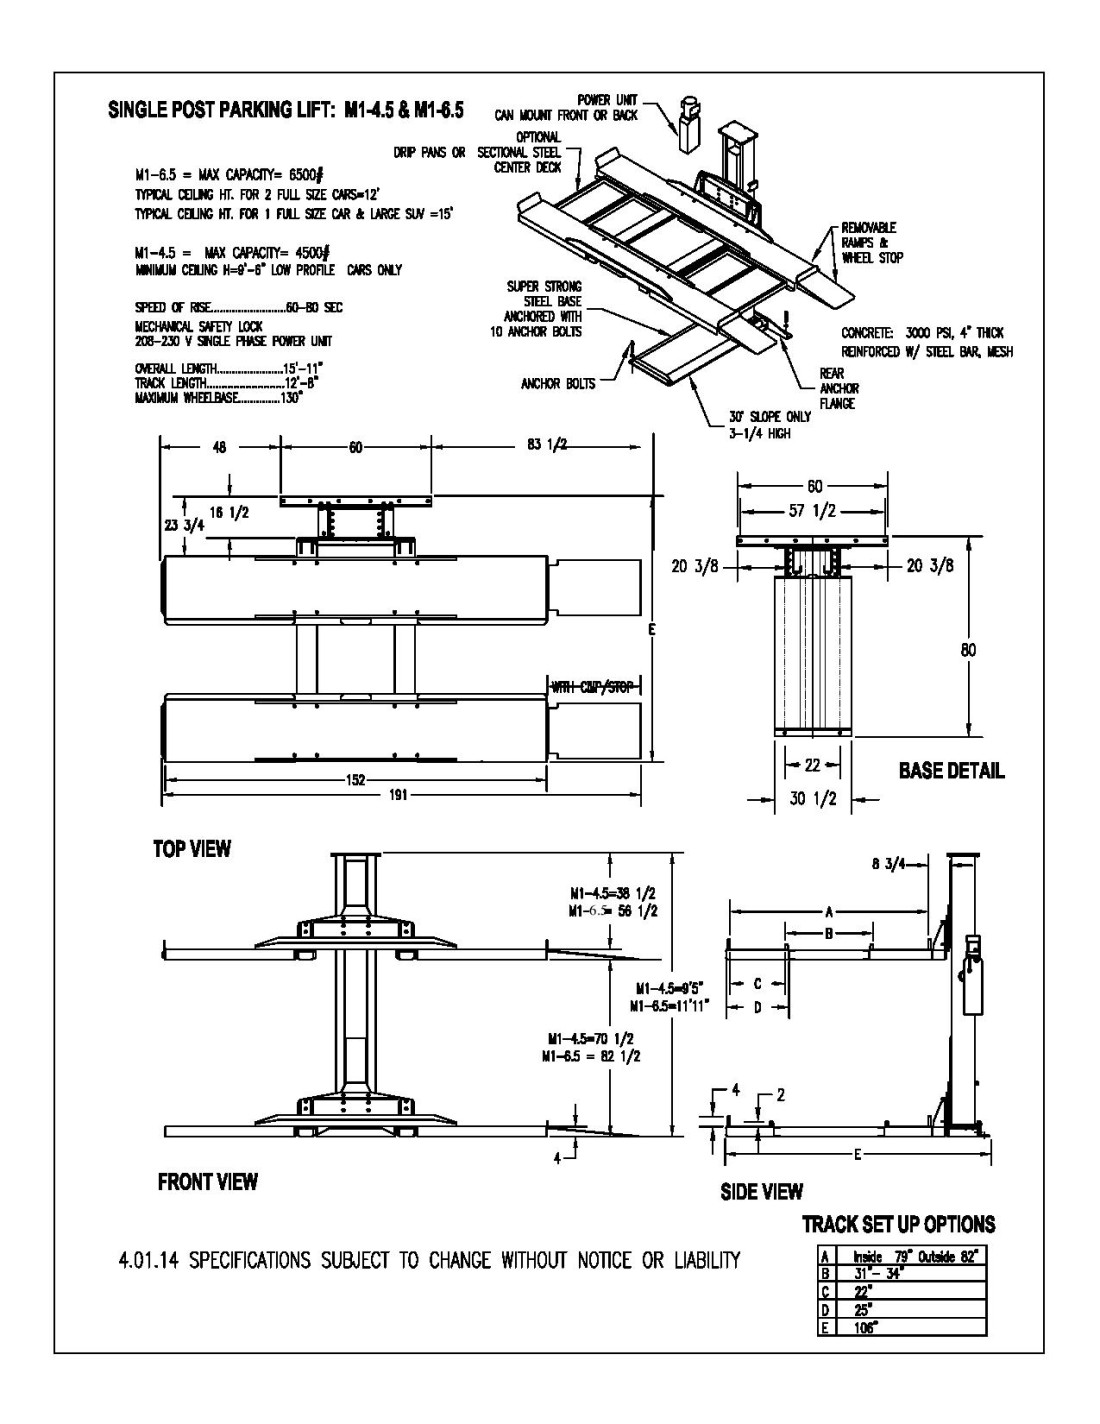 Fluidbay the fluid power store examples of kitchen layouts hockey Generator Wiring Diagrams Cover Lift Diagrams Single Phase Capacitor Motor Wiring Diagrams on 2 post lift wiring diagrams